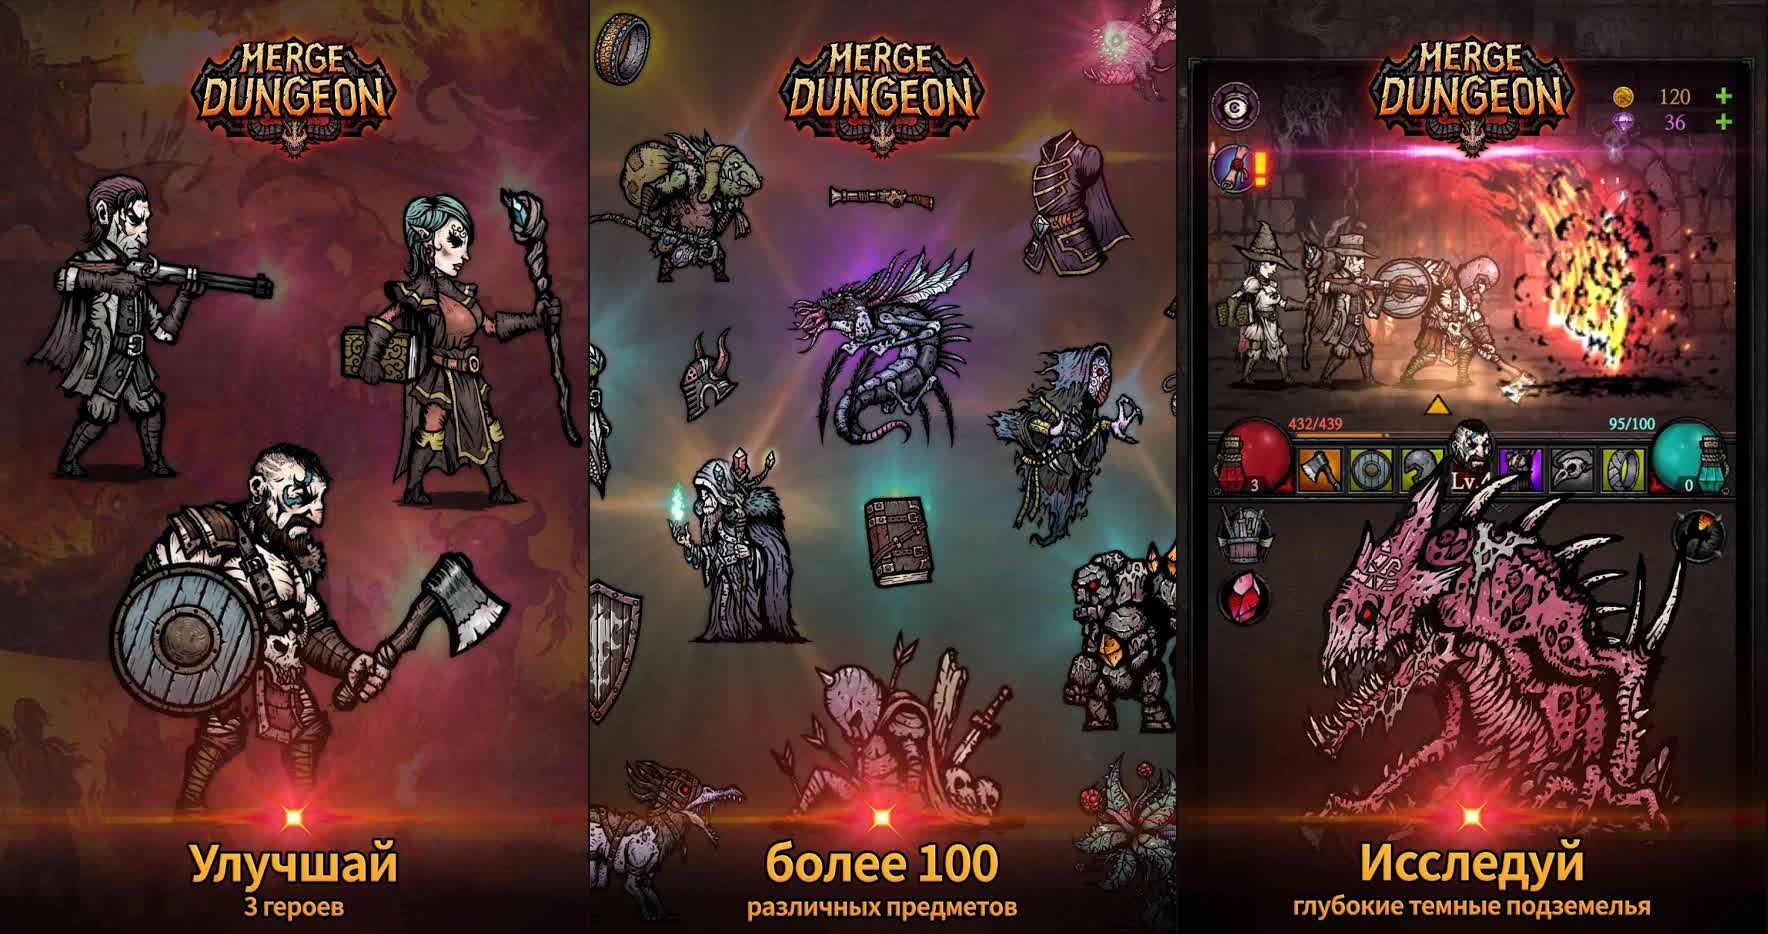 Состоялся релиз Merge Dungeon — клона Darkest Dungeon для Android